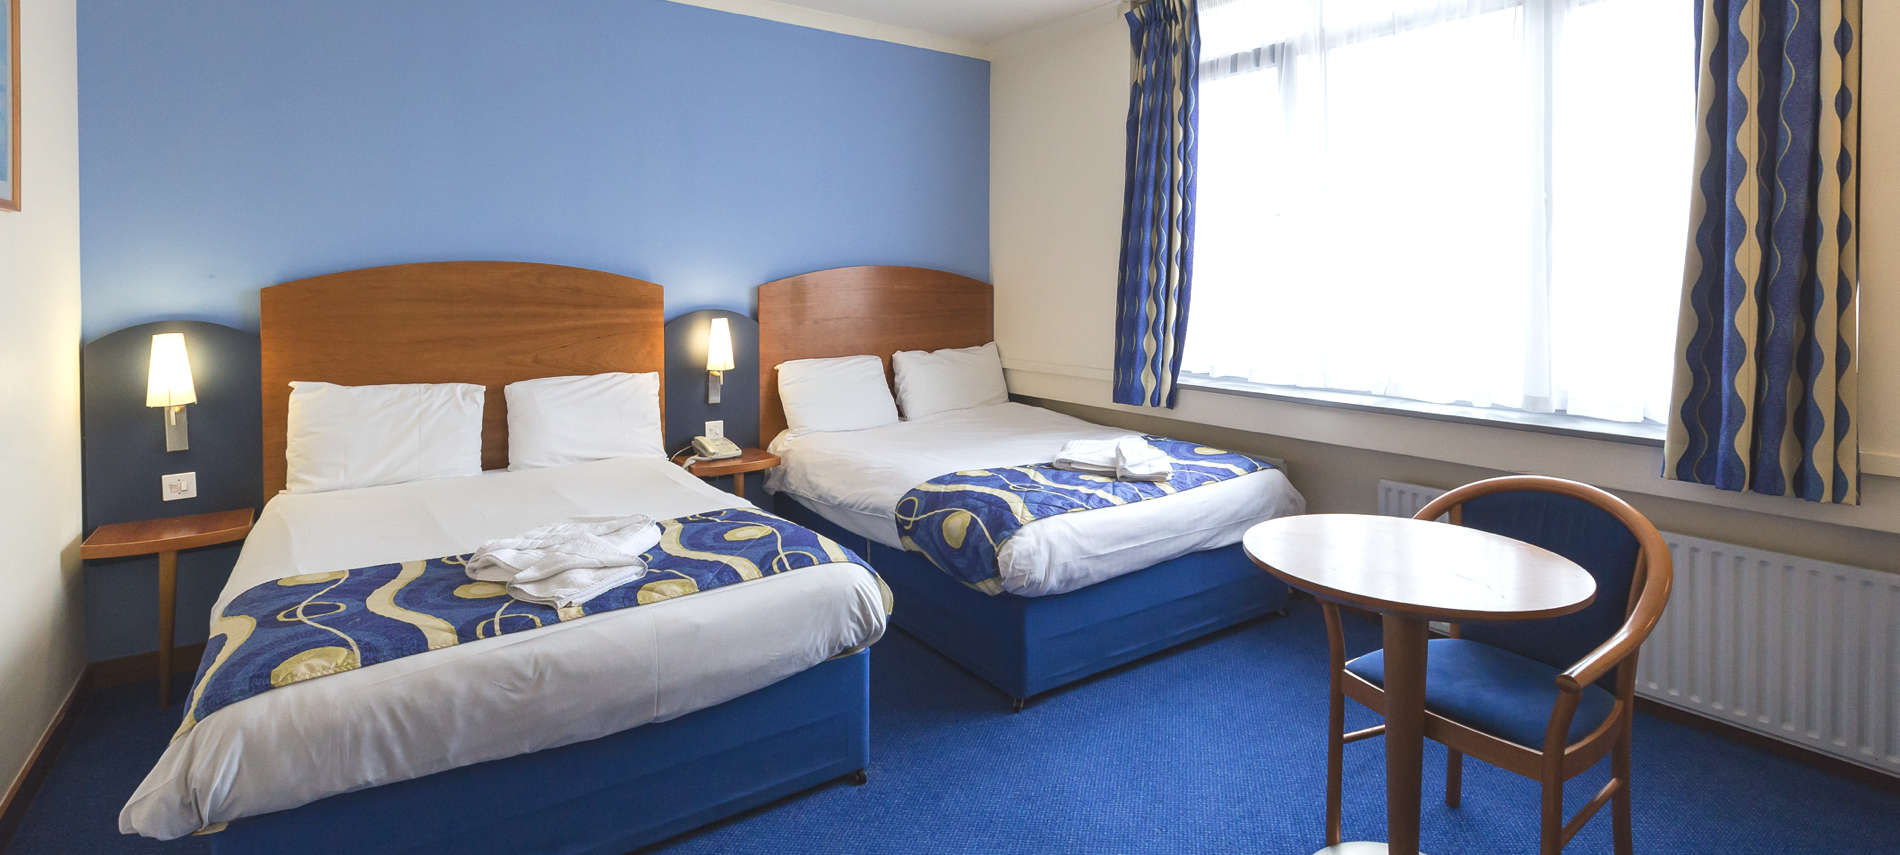 Student Day Rooms In Wembley